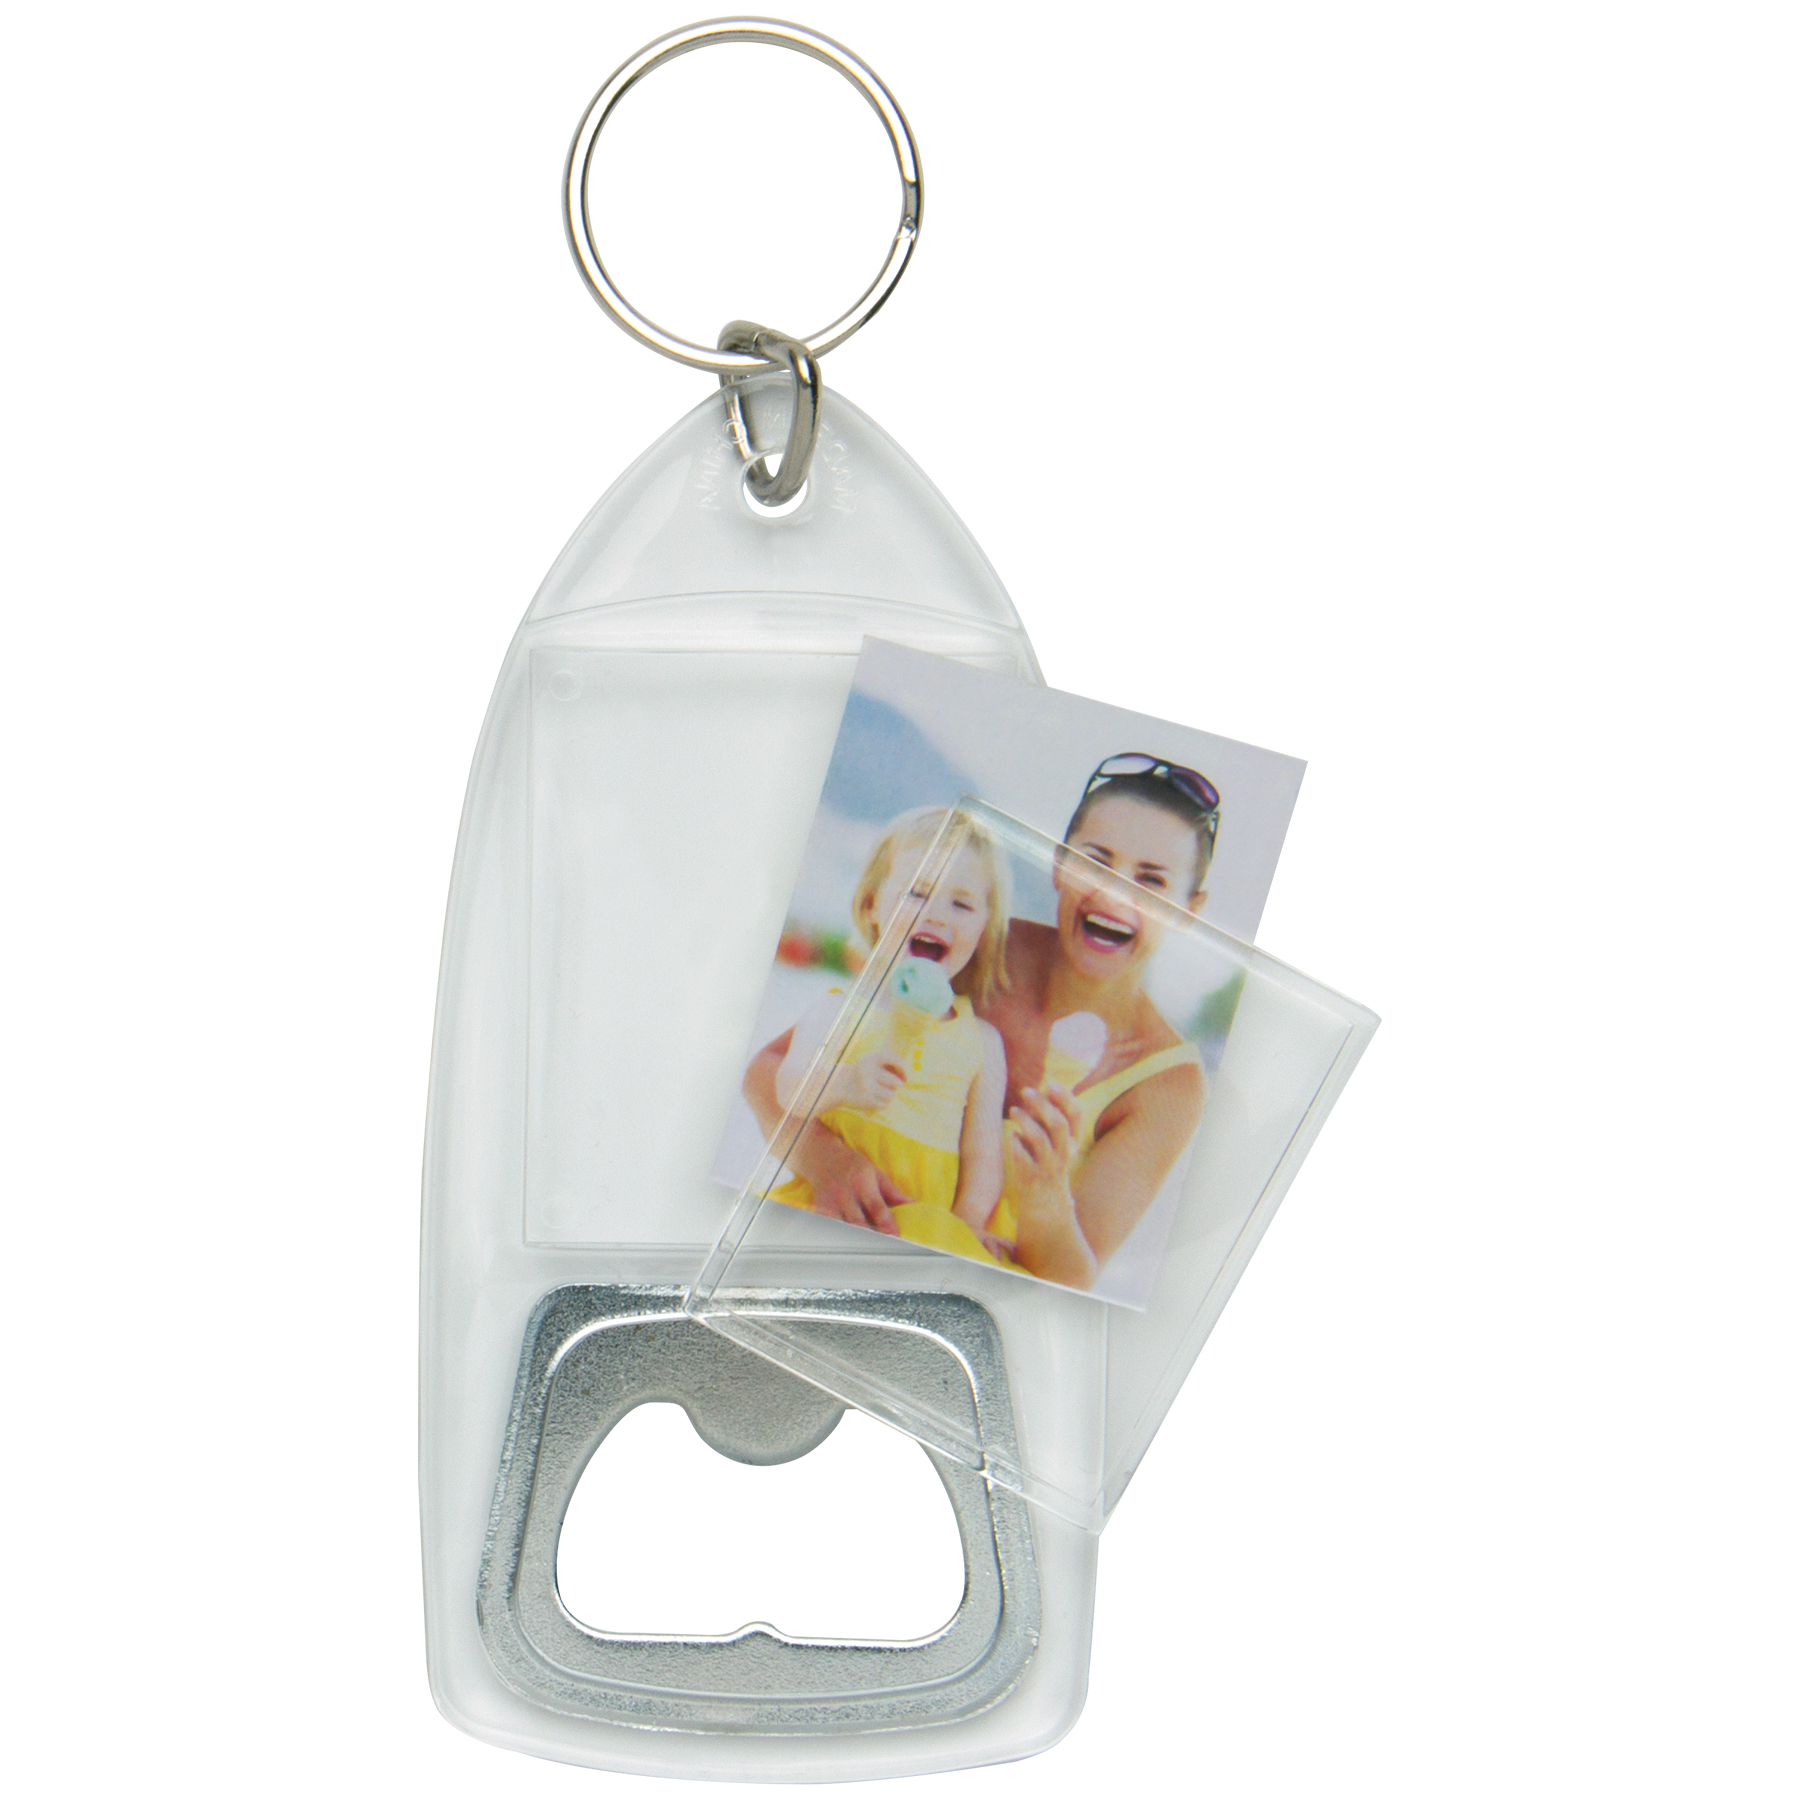 wholesale snap in photo keychains bottle opener keychain neil enterprises. Black Bedroom Furniture Sets. Home Design Ideas